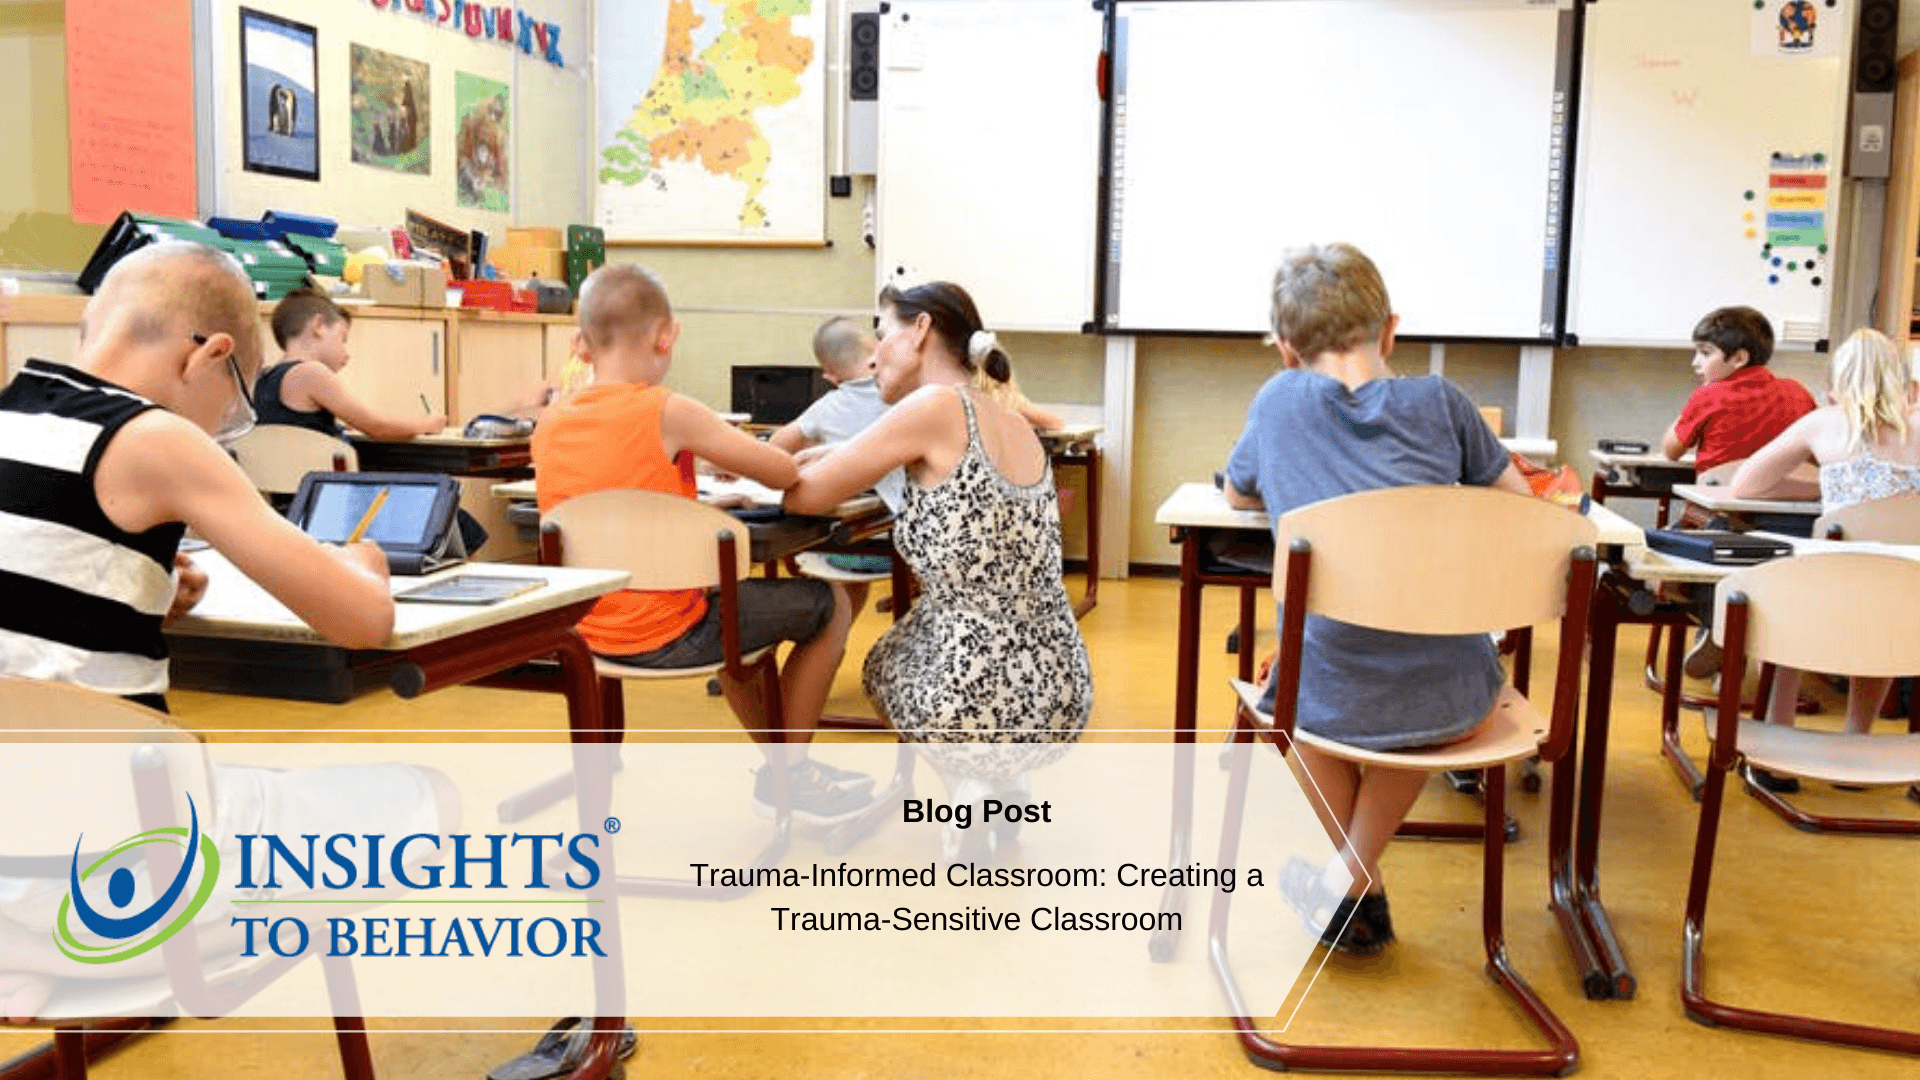 Insights to behavior blog post image template (5)